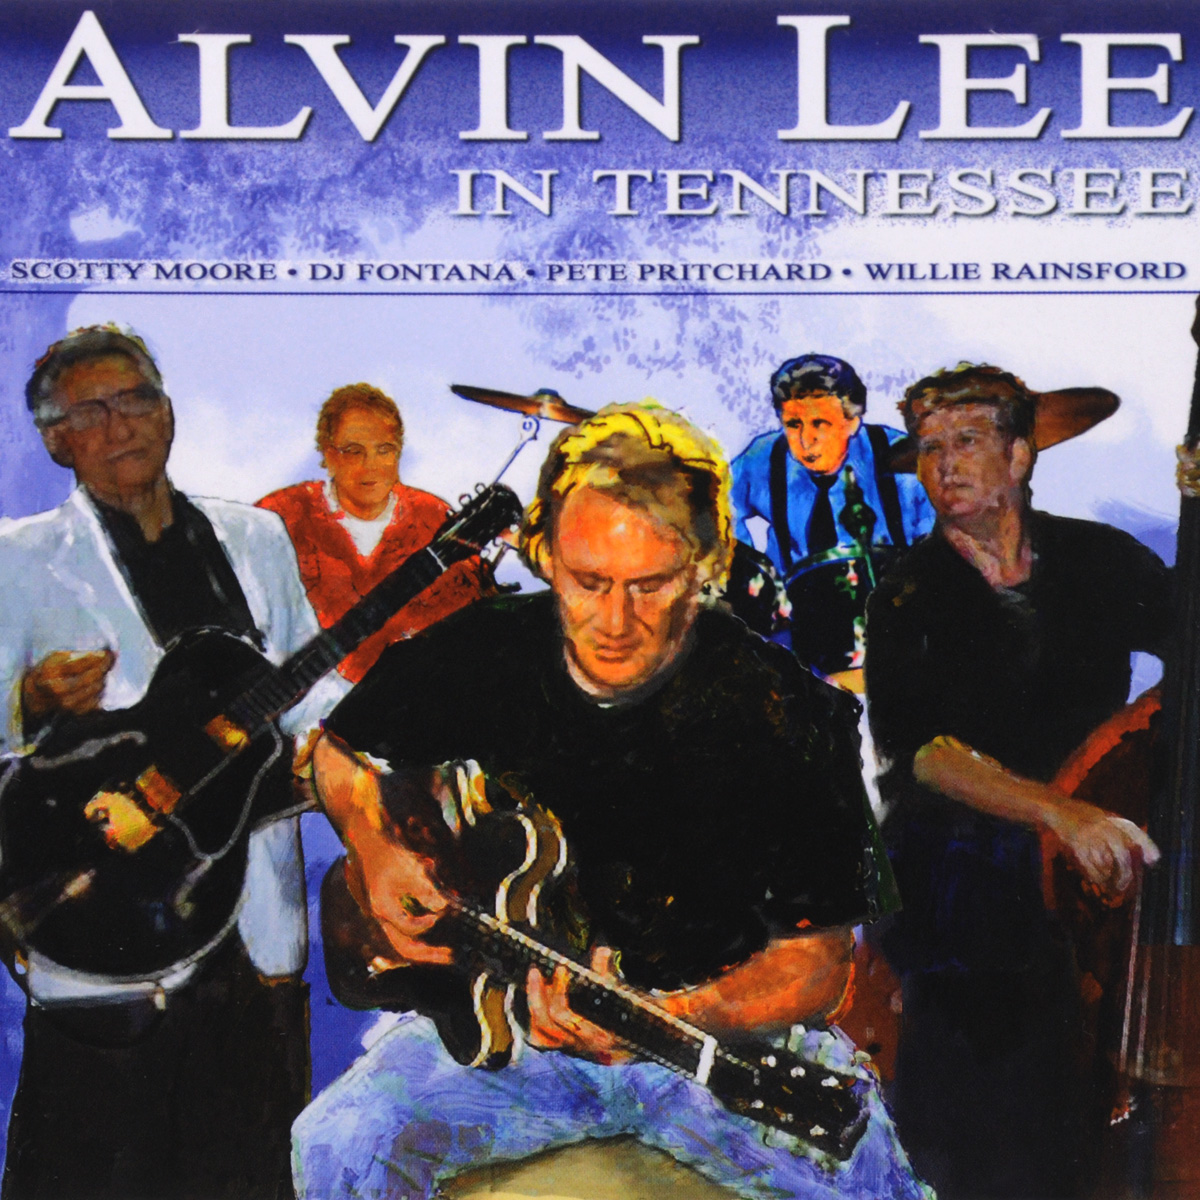 Alvin Lee. Alvin Lee In Tennessee